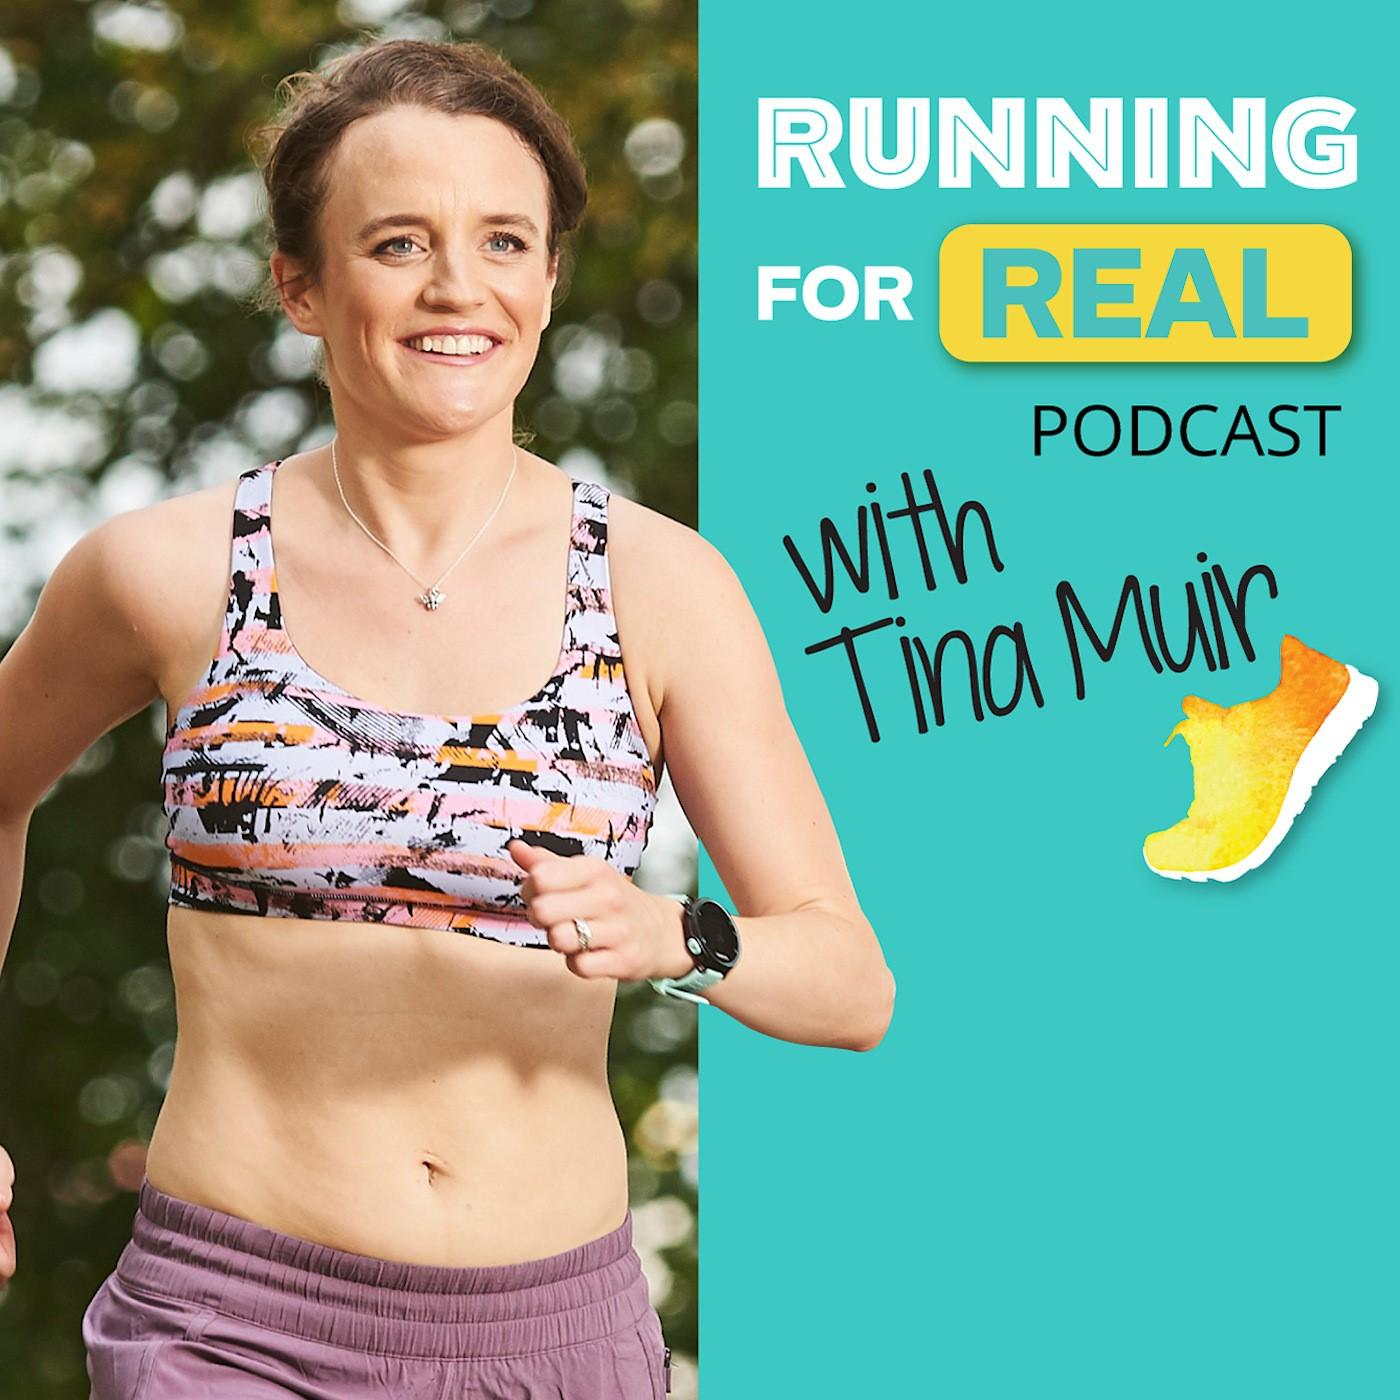 Kara Goucher: Performance Comes From Your Training, Not Your Weight -R4R 166